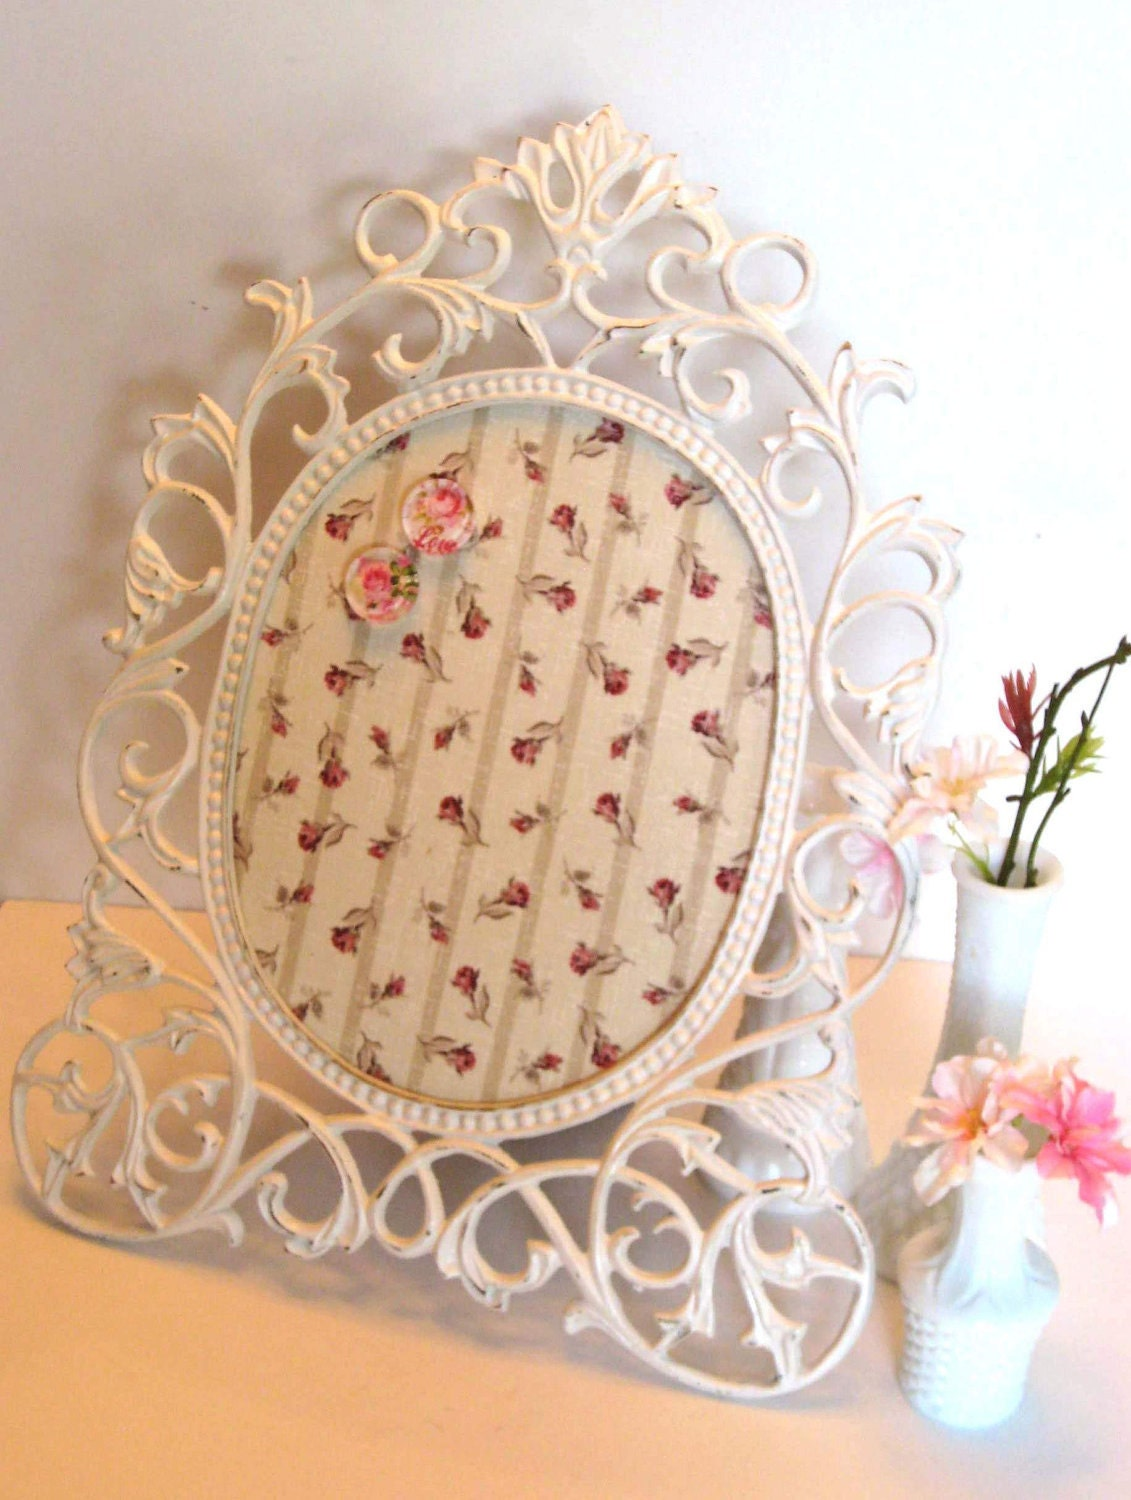 Alyssabeths vintage more etsy love shabby chic style - Vintage and chic love ...